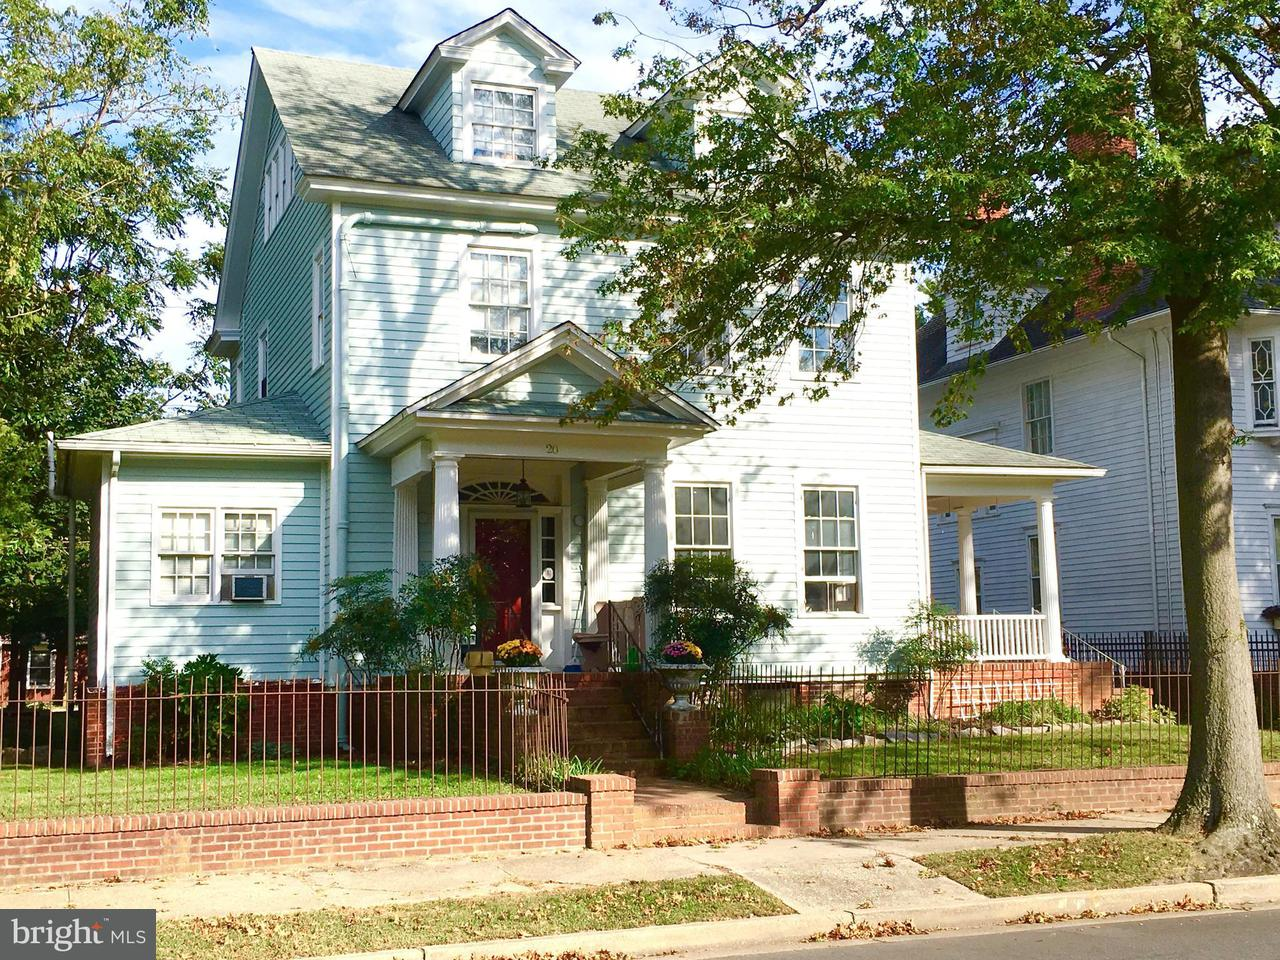 Multi-Family Home for Sale at 20 AURORA ST N 20 AURORA ST N Easton, Maryland 21601 United States